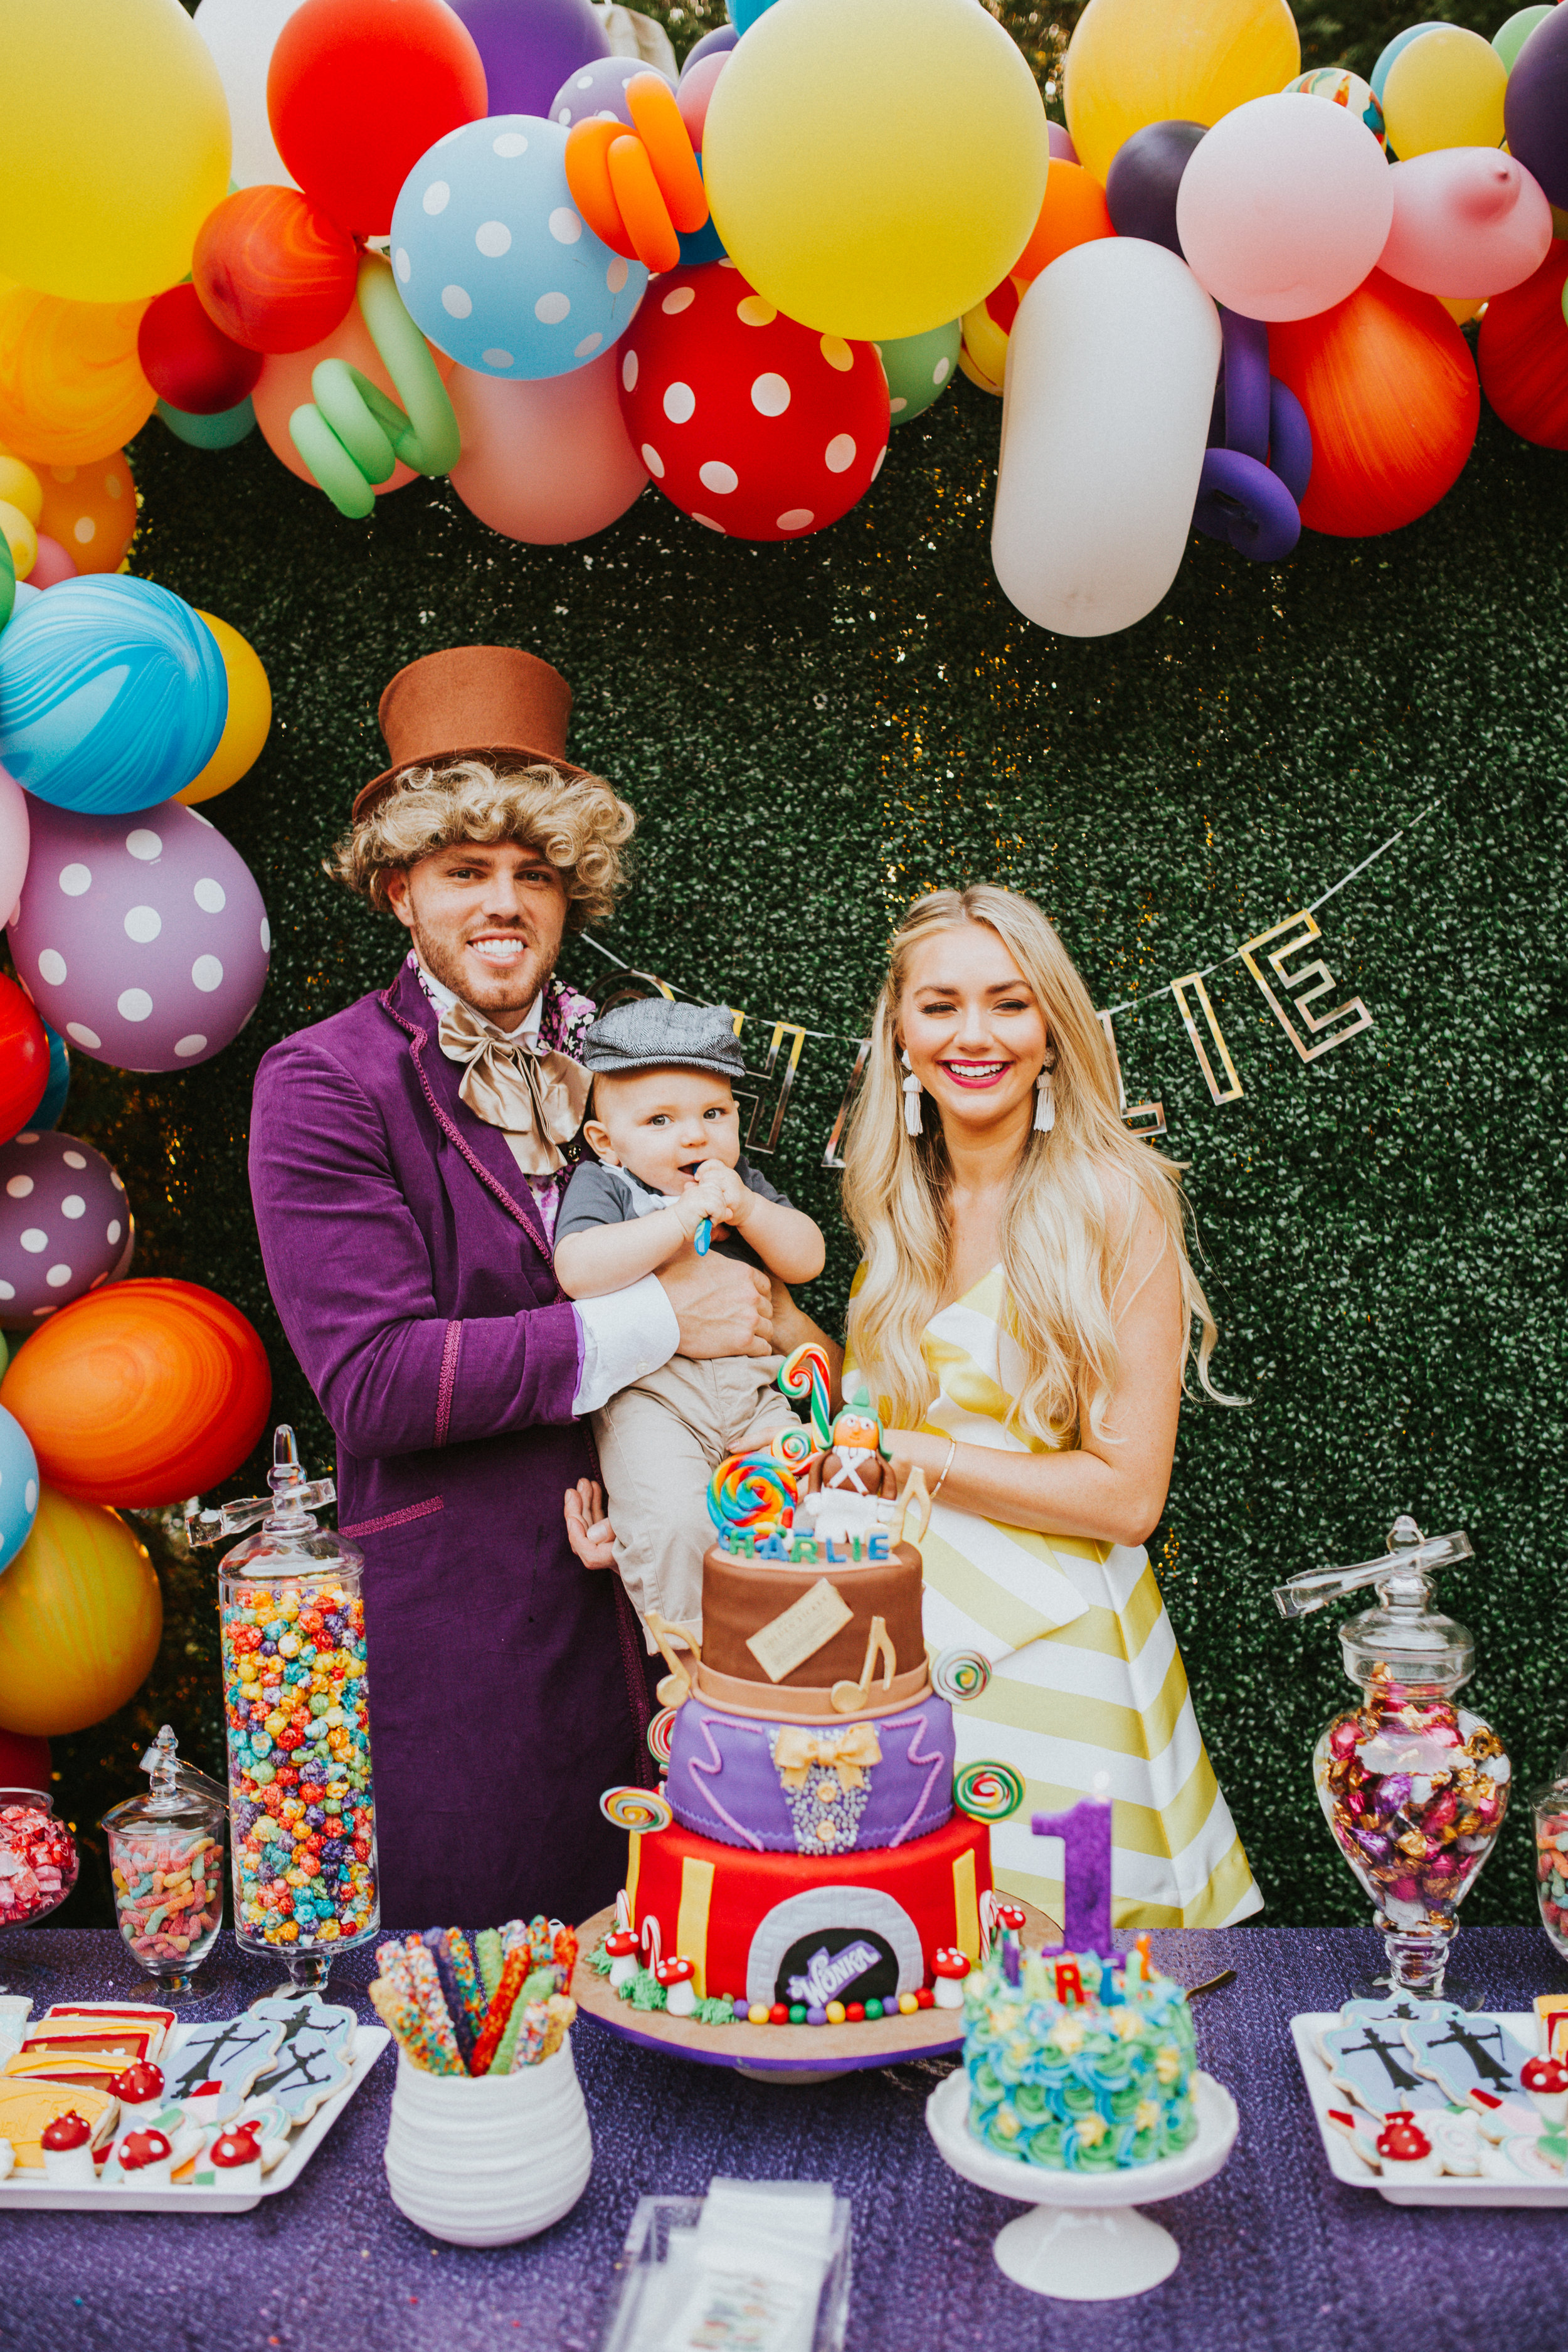 Willy Wonka Themed Birthday Party - Scarlet Plan & Design Atlanta Party Event Planners & Designers (152).jpg